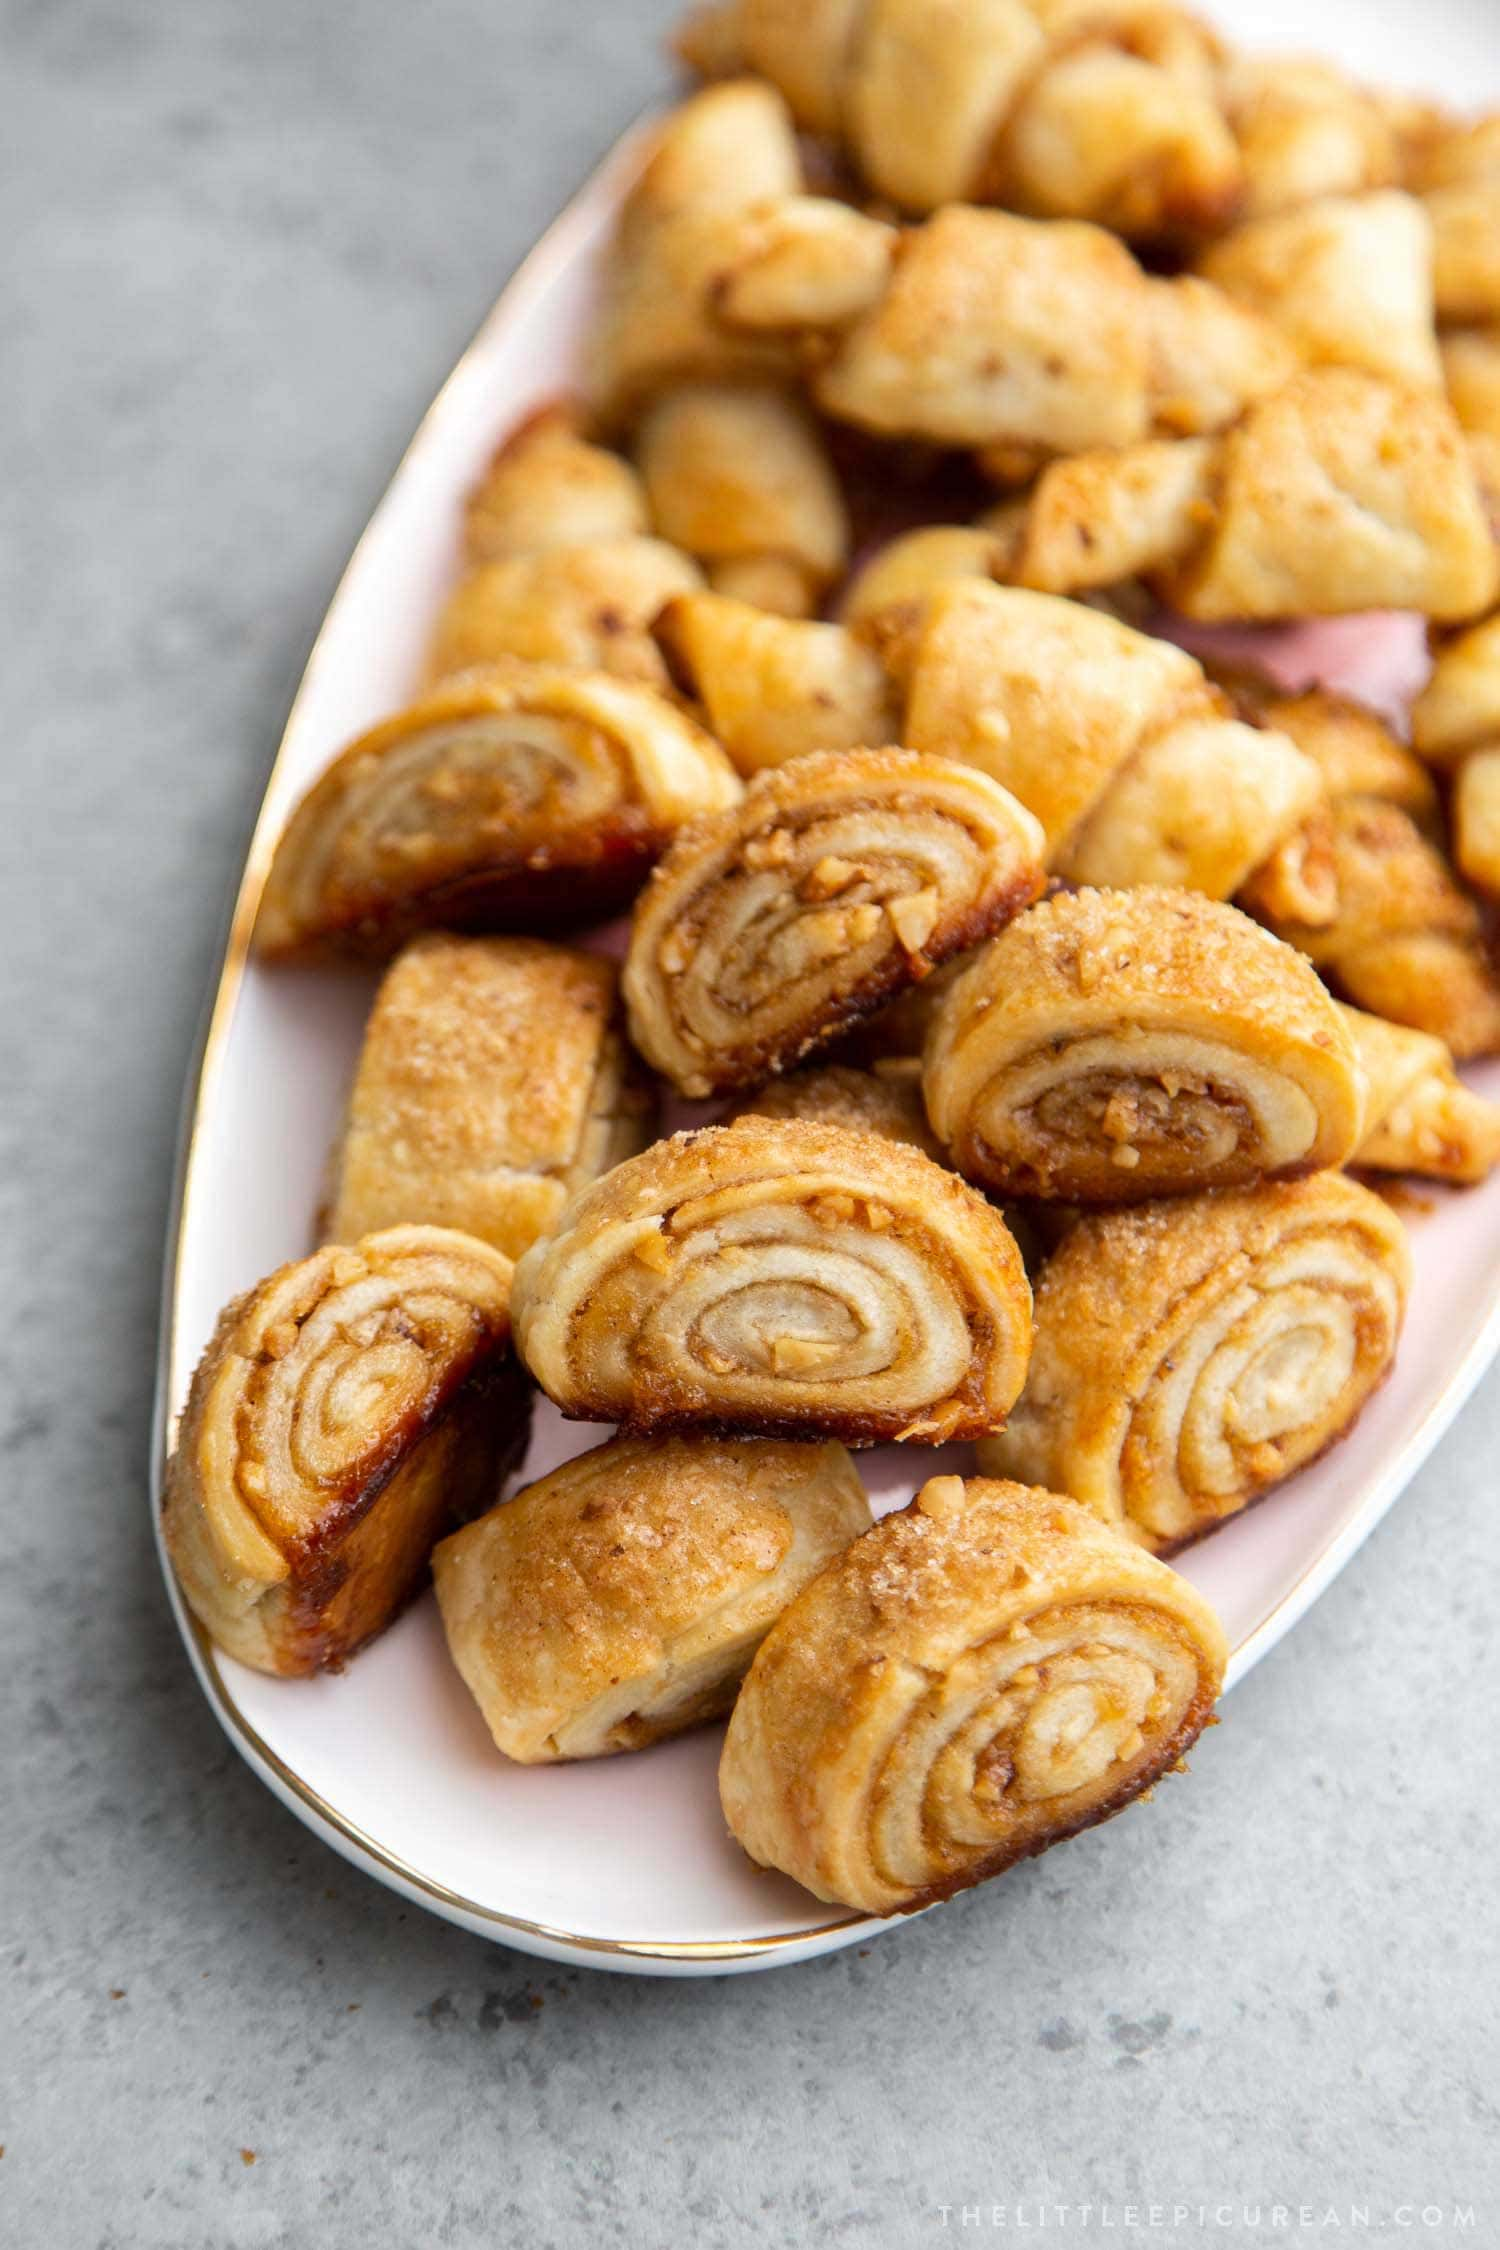 Guava Rugelach. This part cookie, part pastry baked treat is filled with guava jam and chopped walnuts.